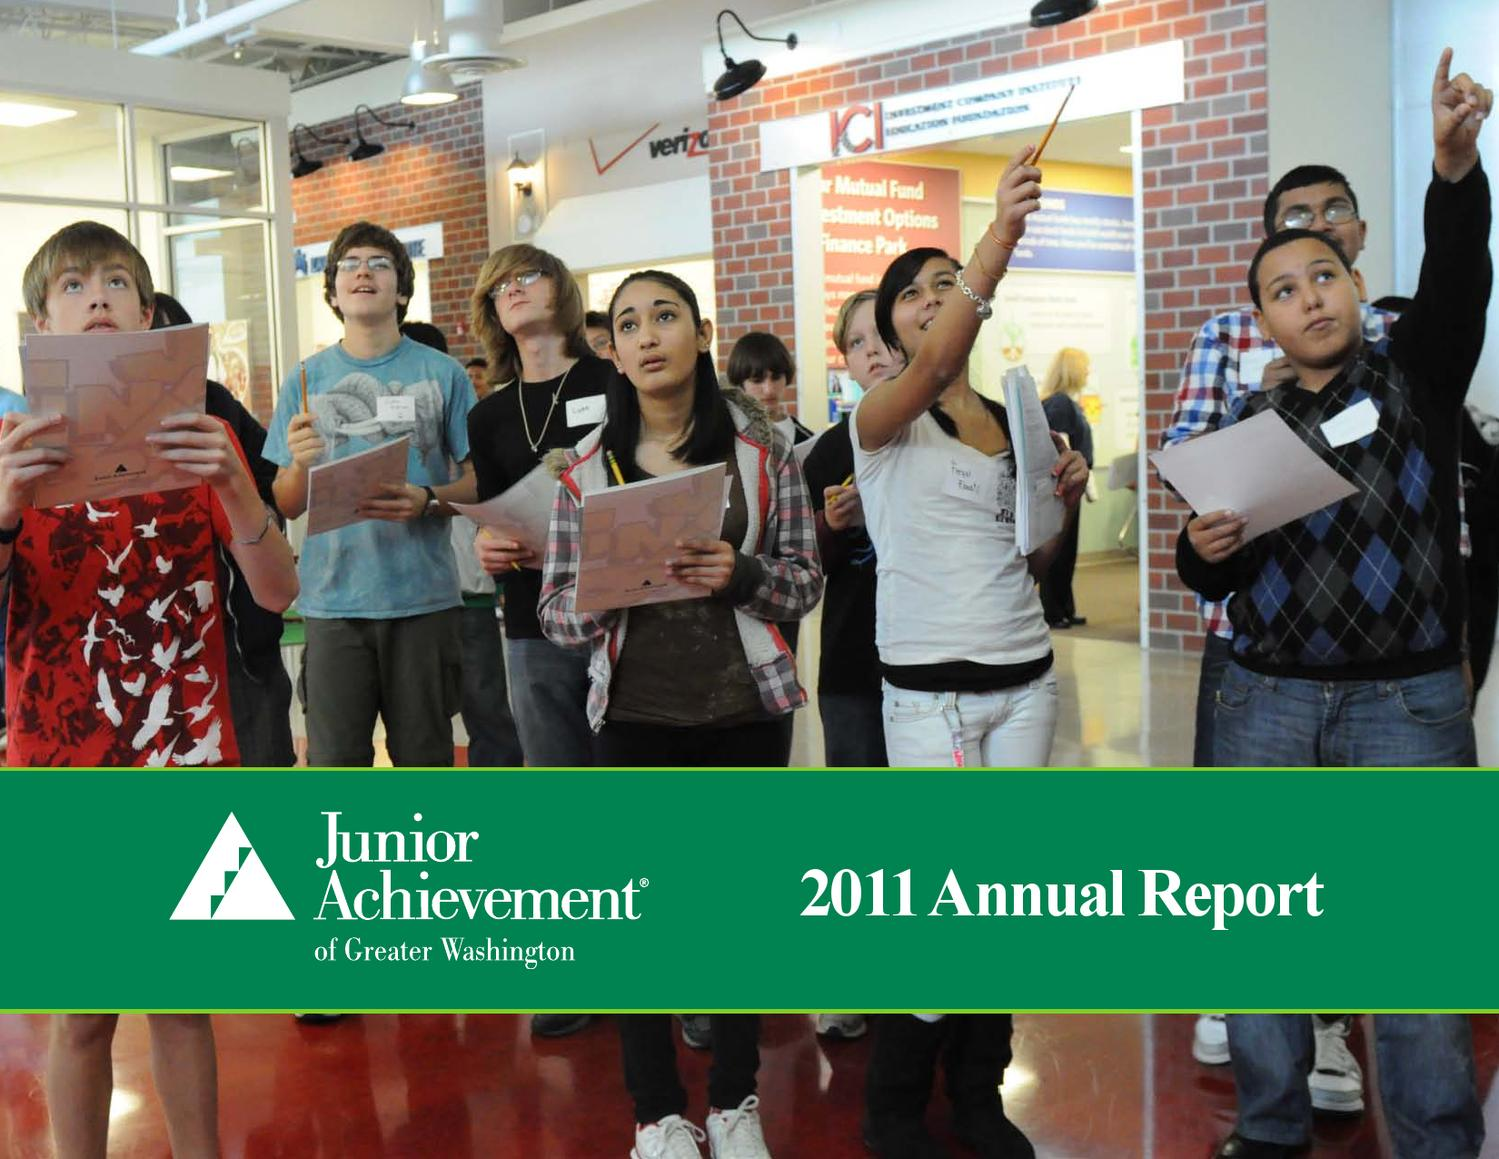 junior achievement annual report by david bing issuu